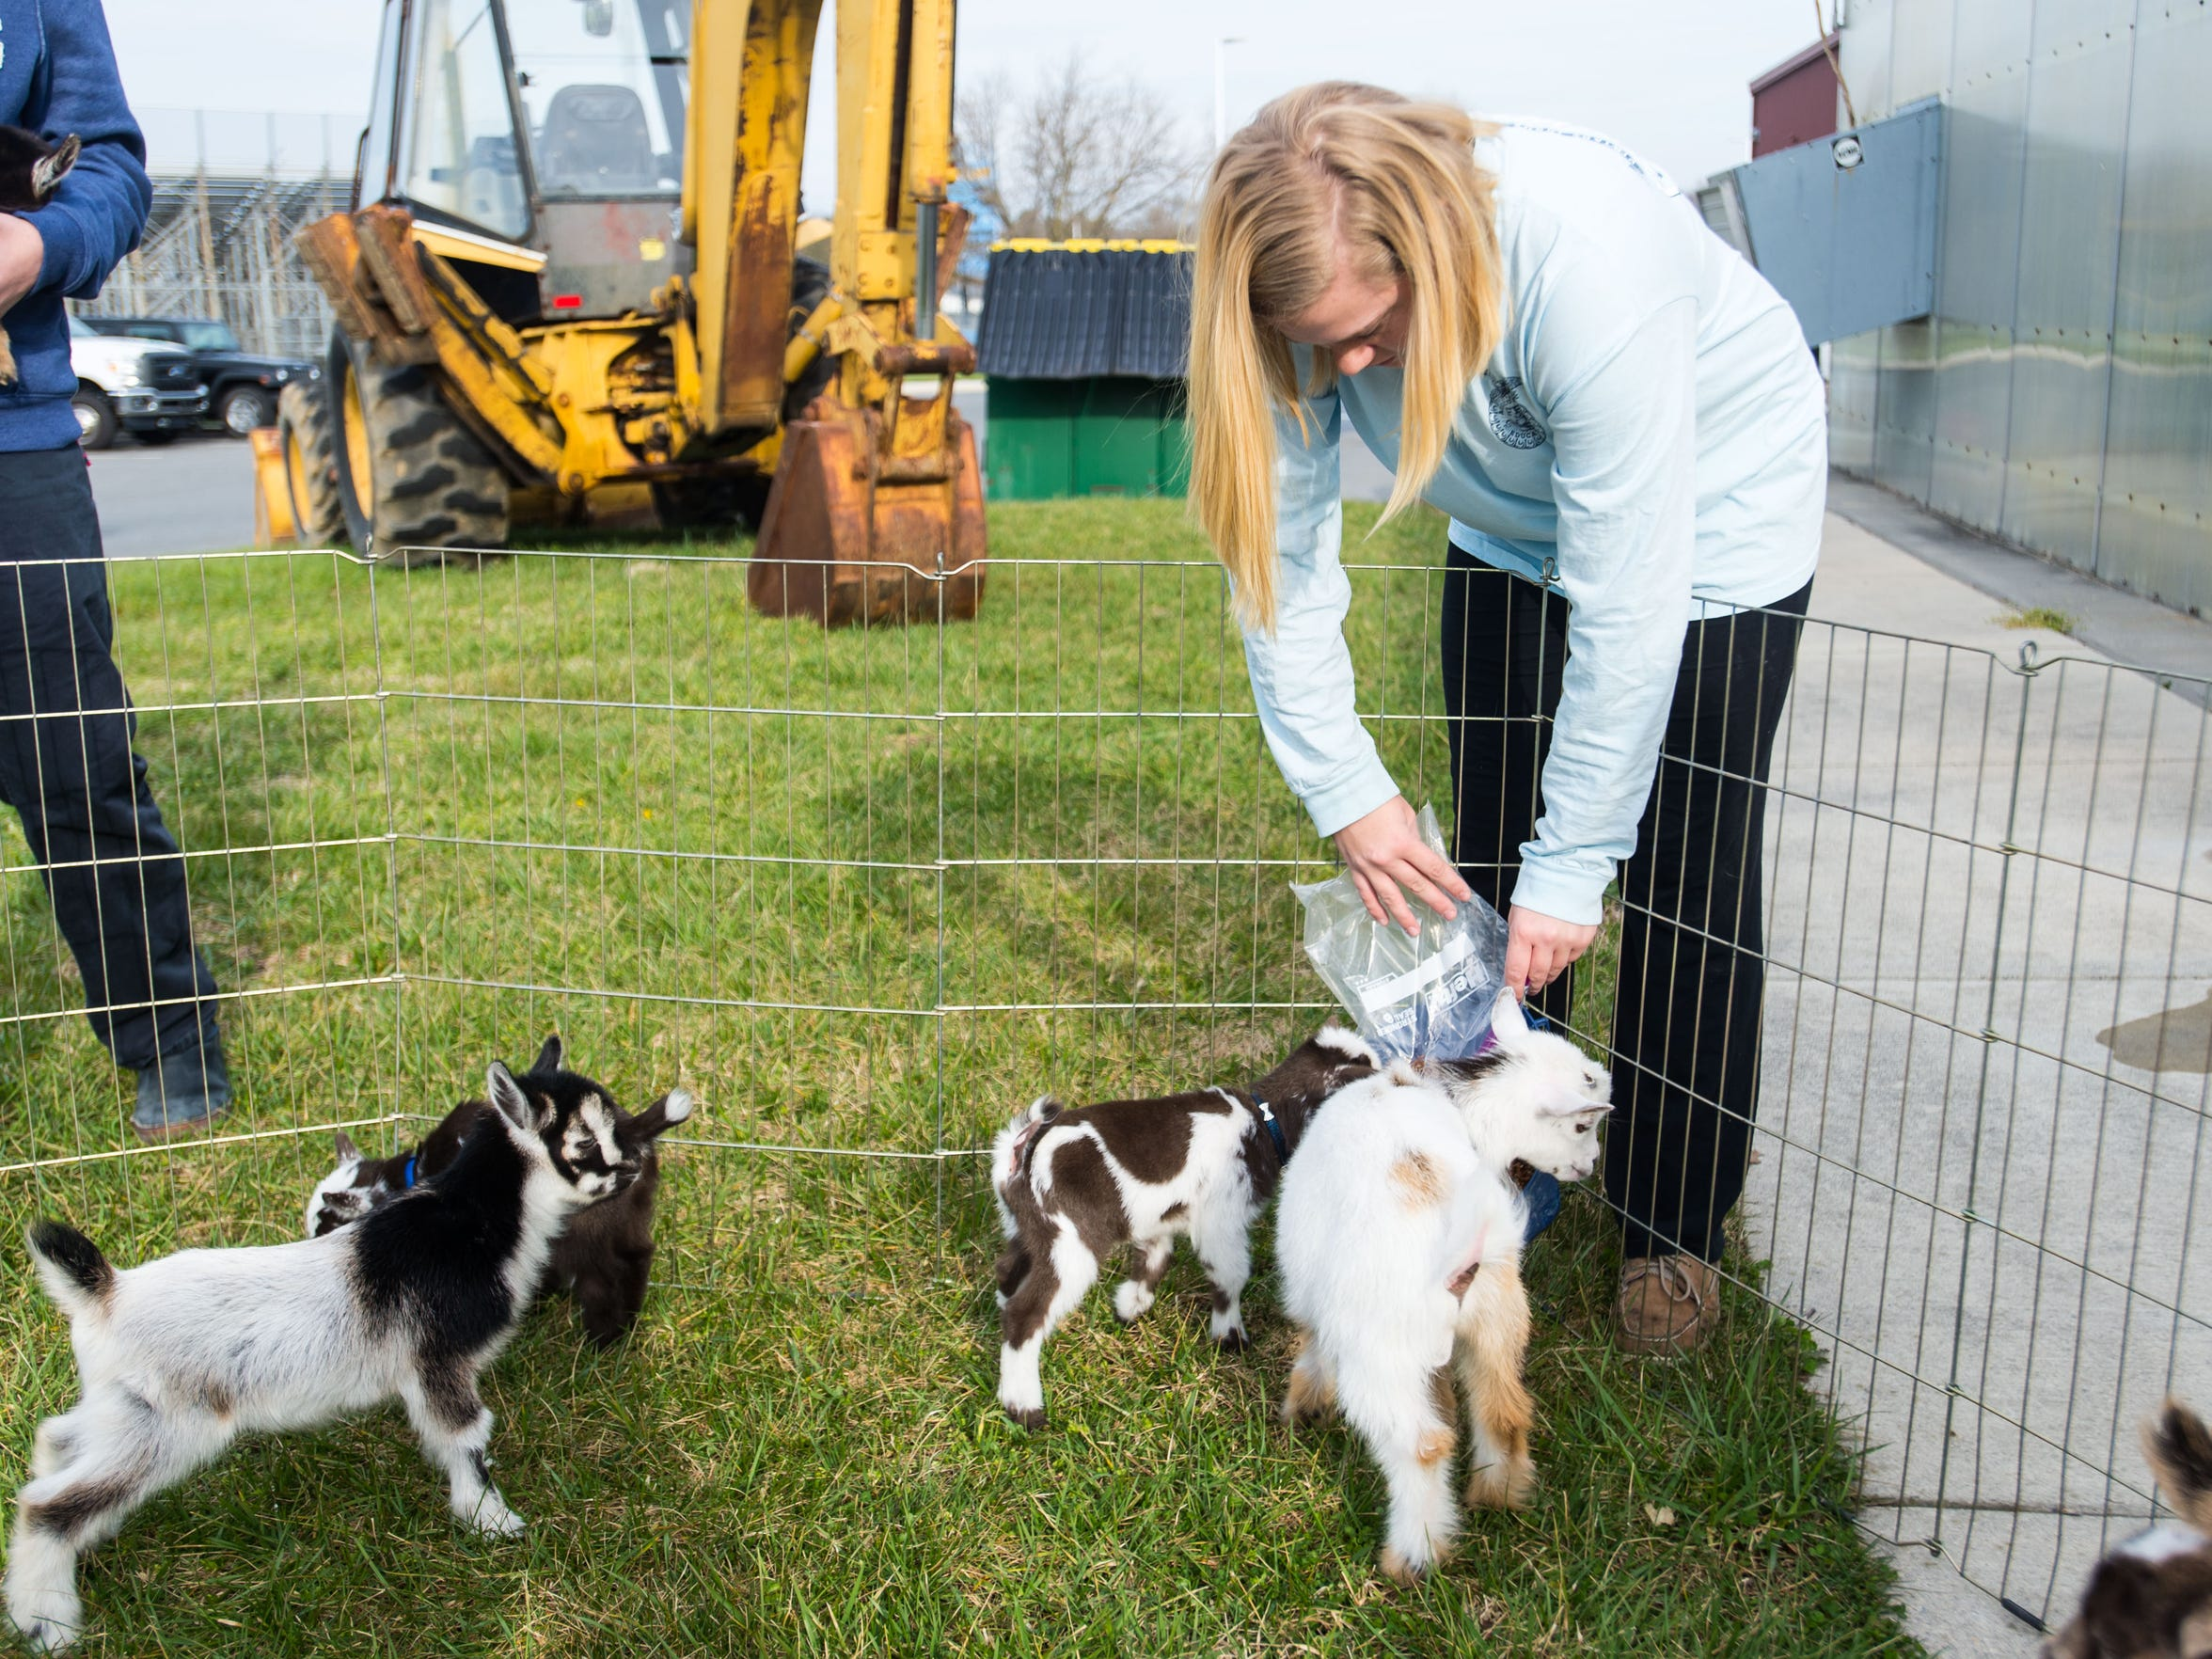 Cape Henlopen senior Shannon McCall feeds baby goats at Cape Henlopen High School on Tuesday, March 22.